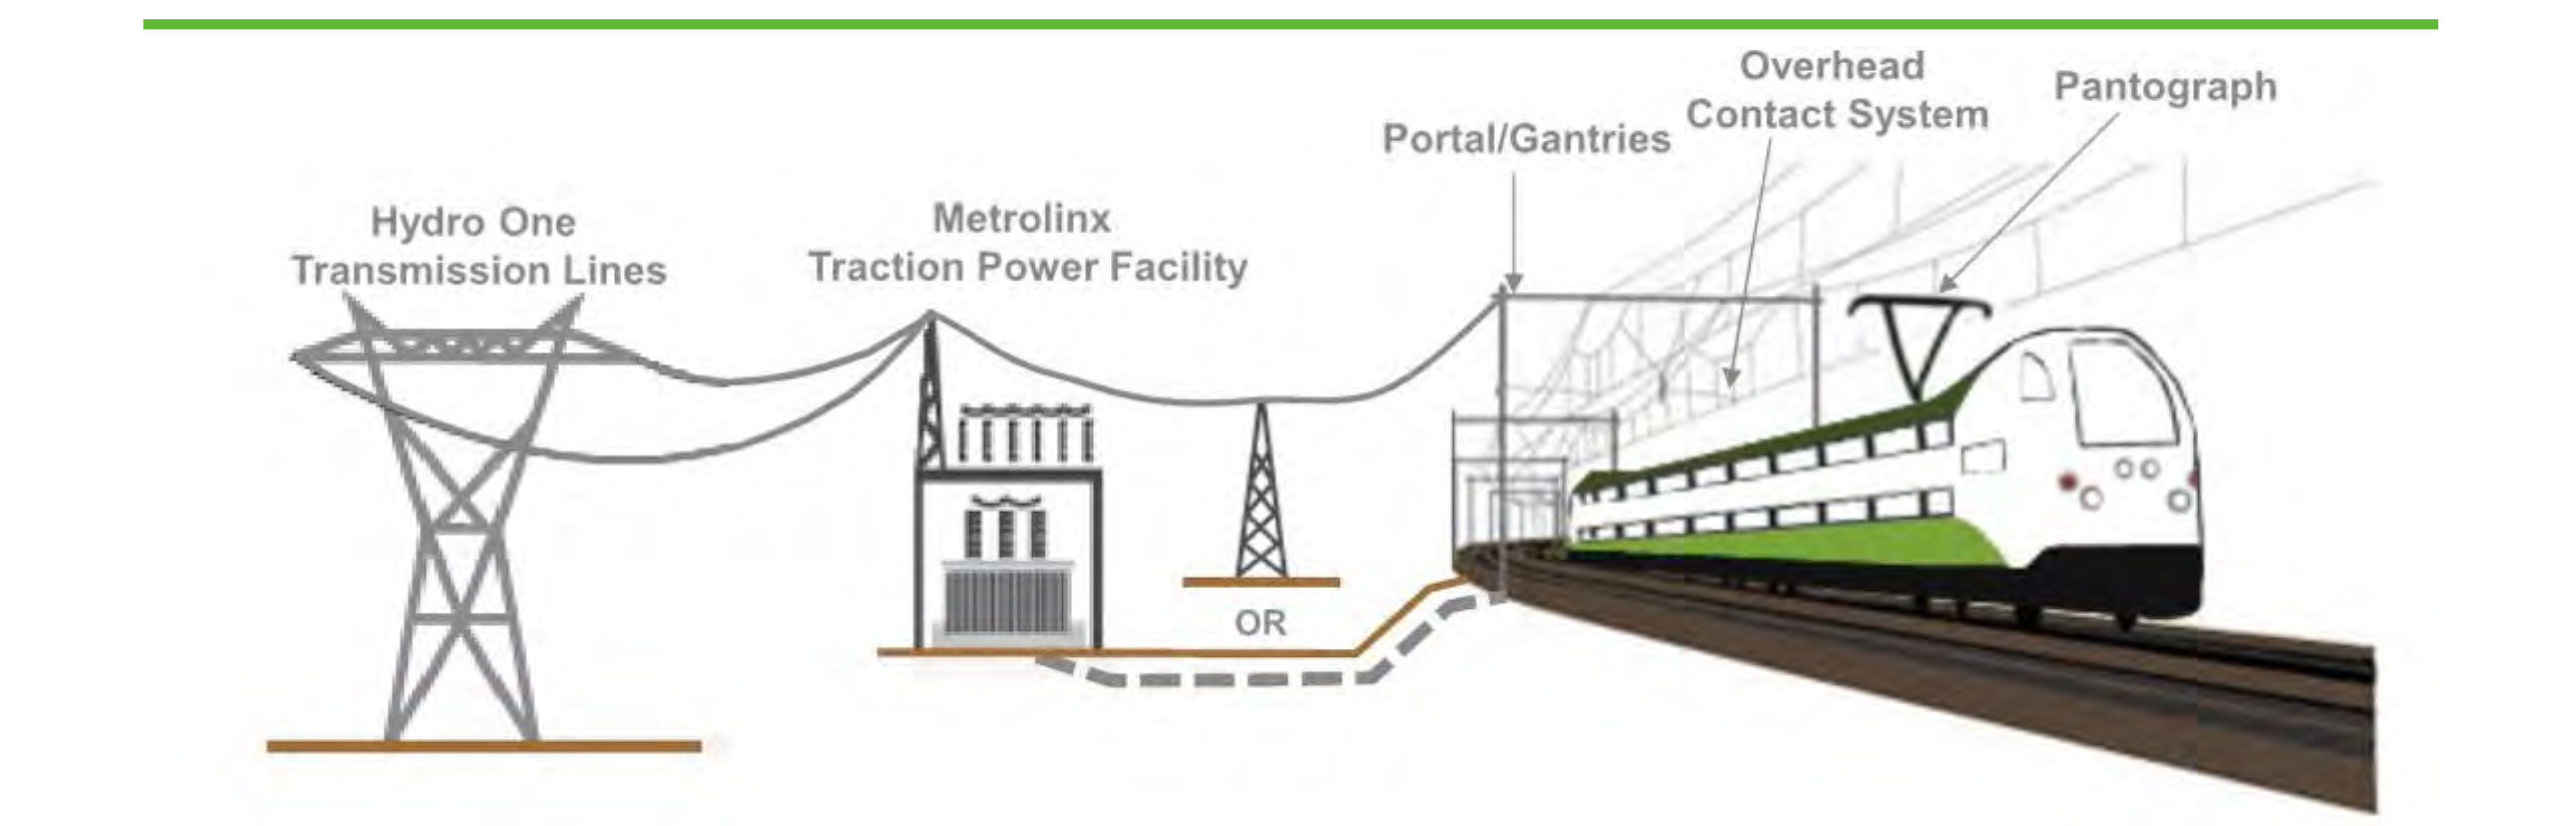 Graphic illustrating how an overhead contact system would power trains